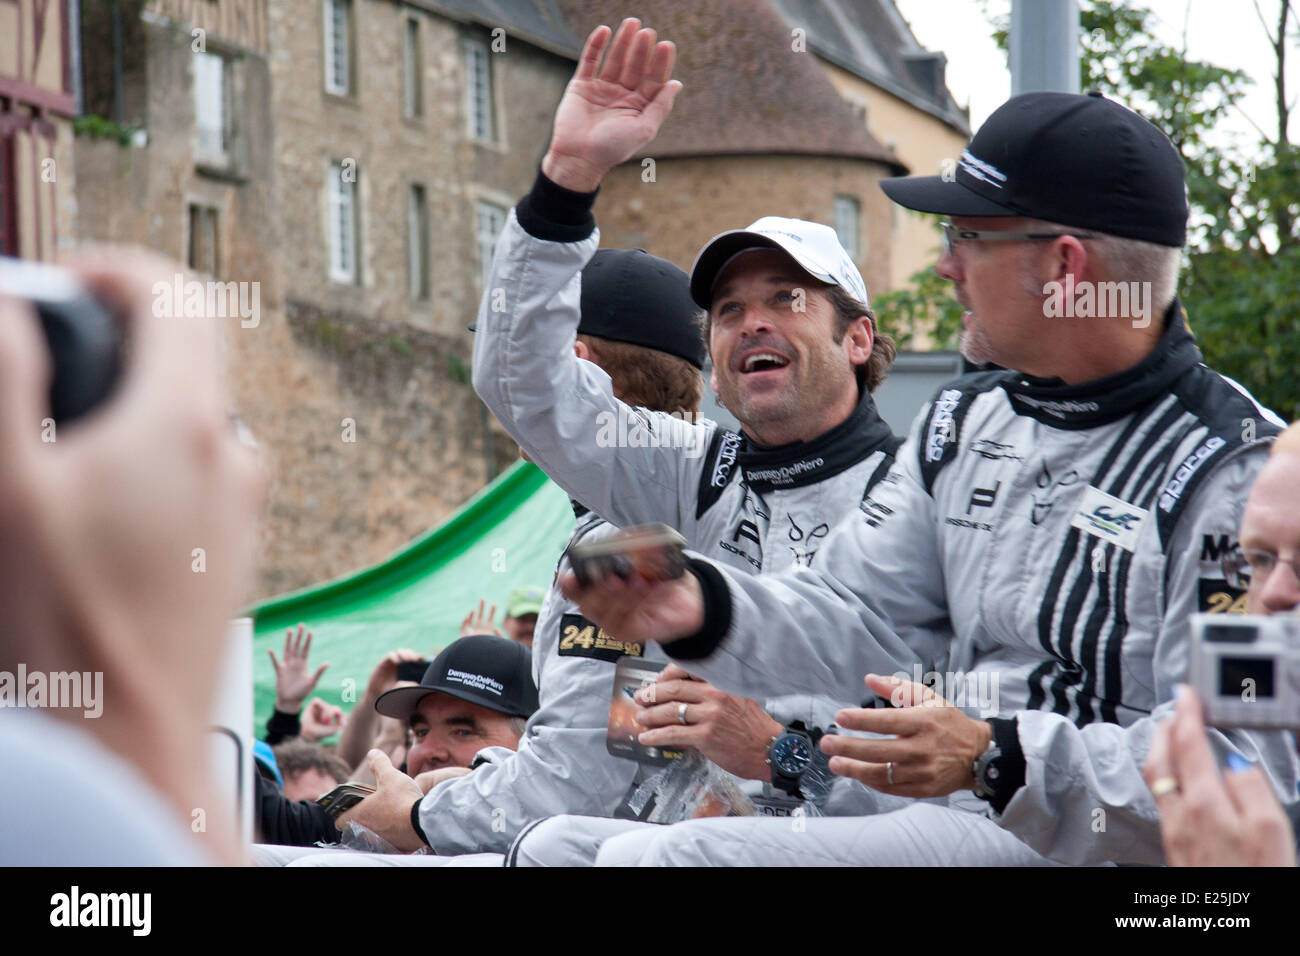 Hollywood Actor And Motor Racing Enthusiast Patrick Dempsey Attends